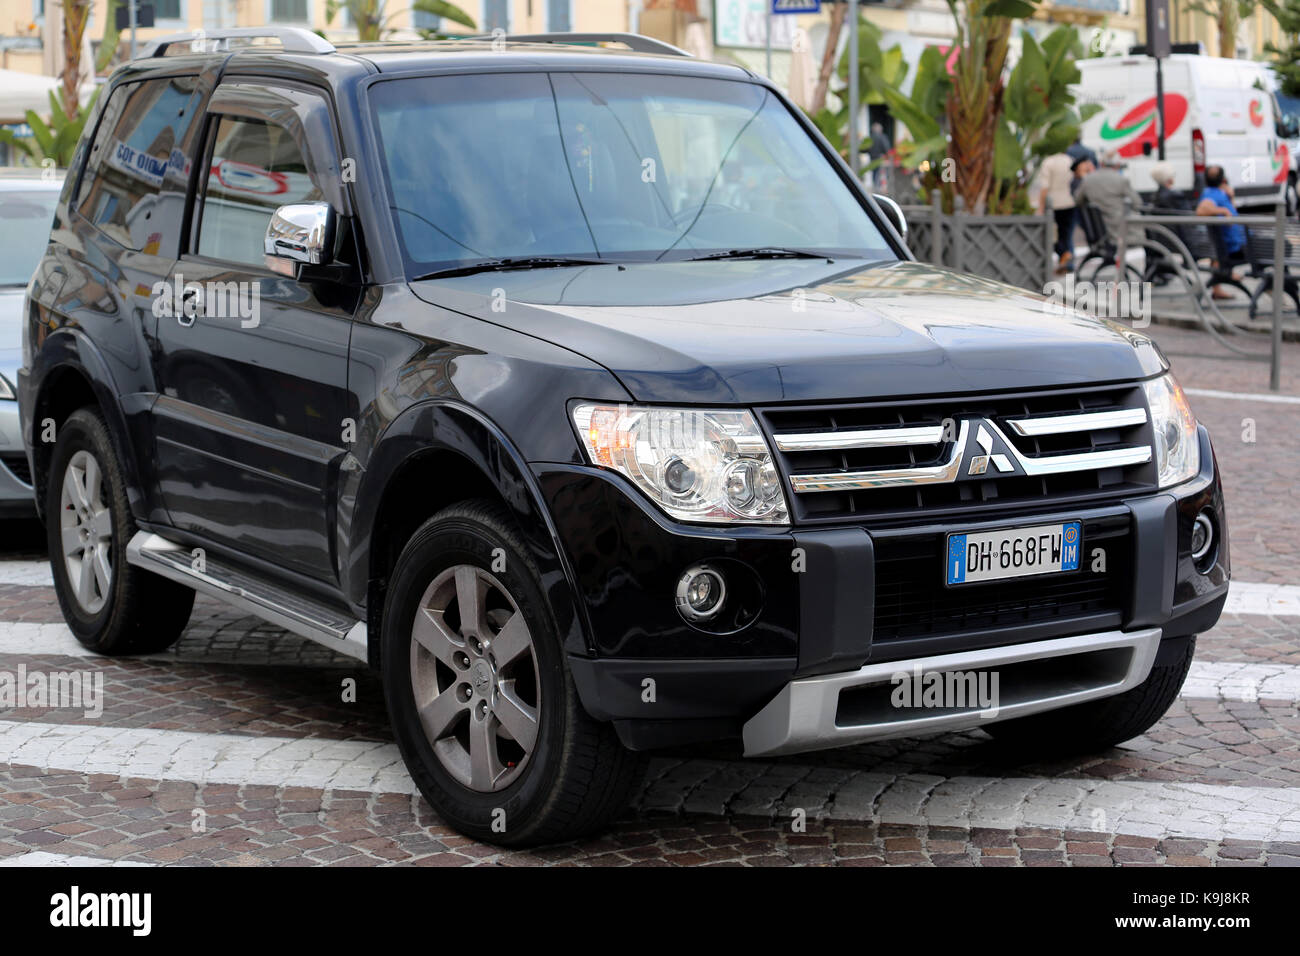 San Remo, Italy - October 16, 2016: Black Mitsubishi Pajero SUV Badly Parked in the Street of San Remo, Italia - Stock Image